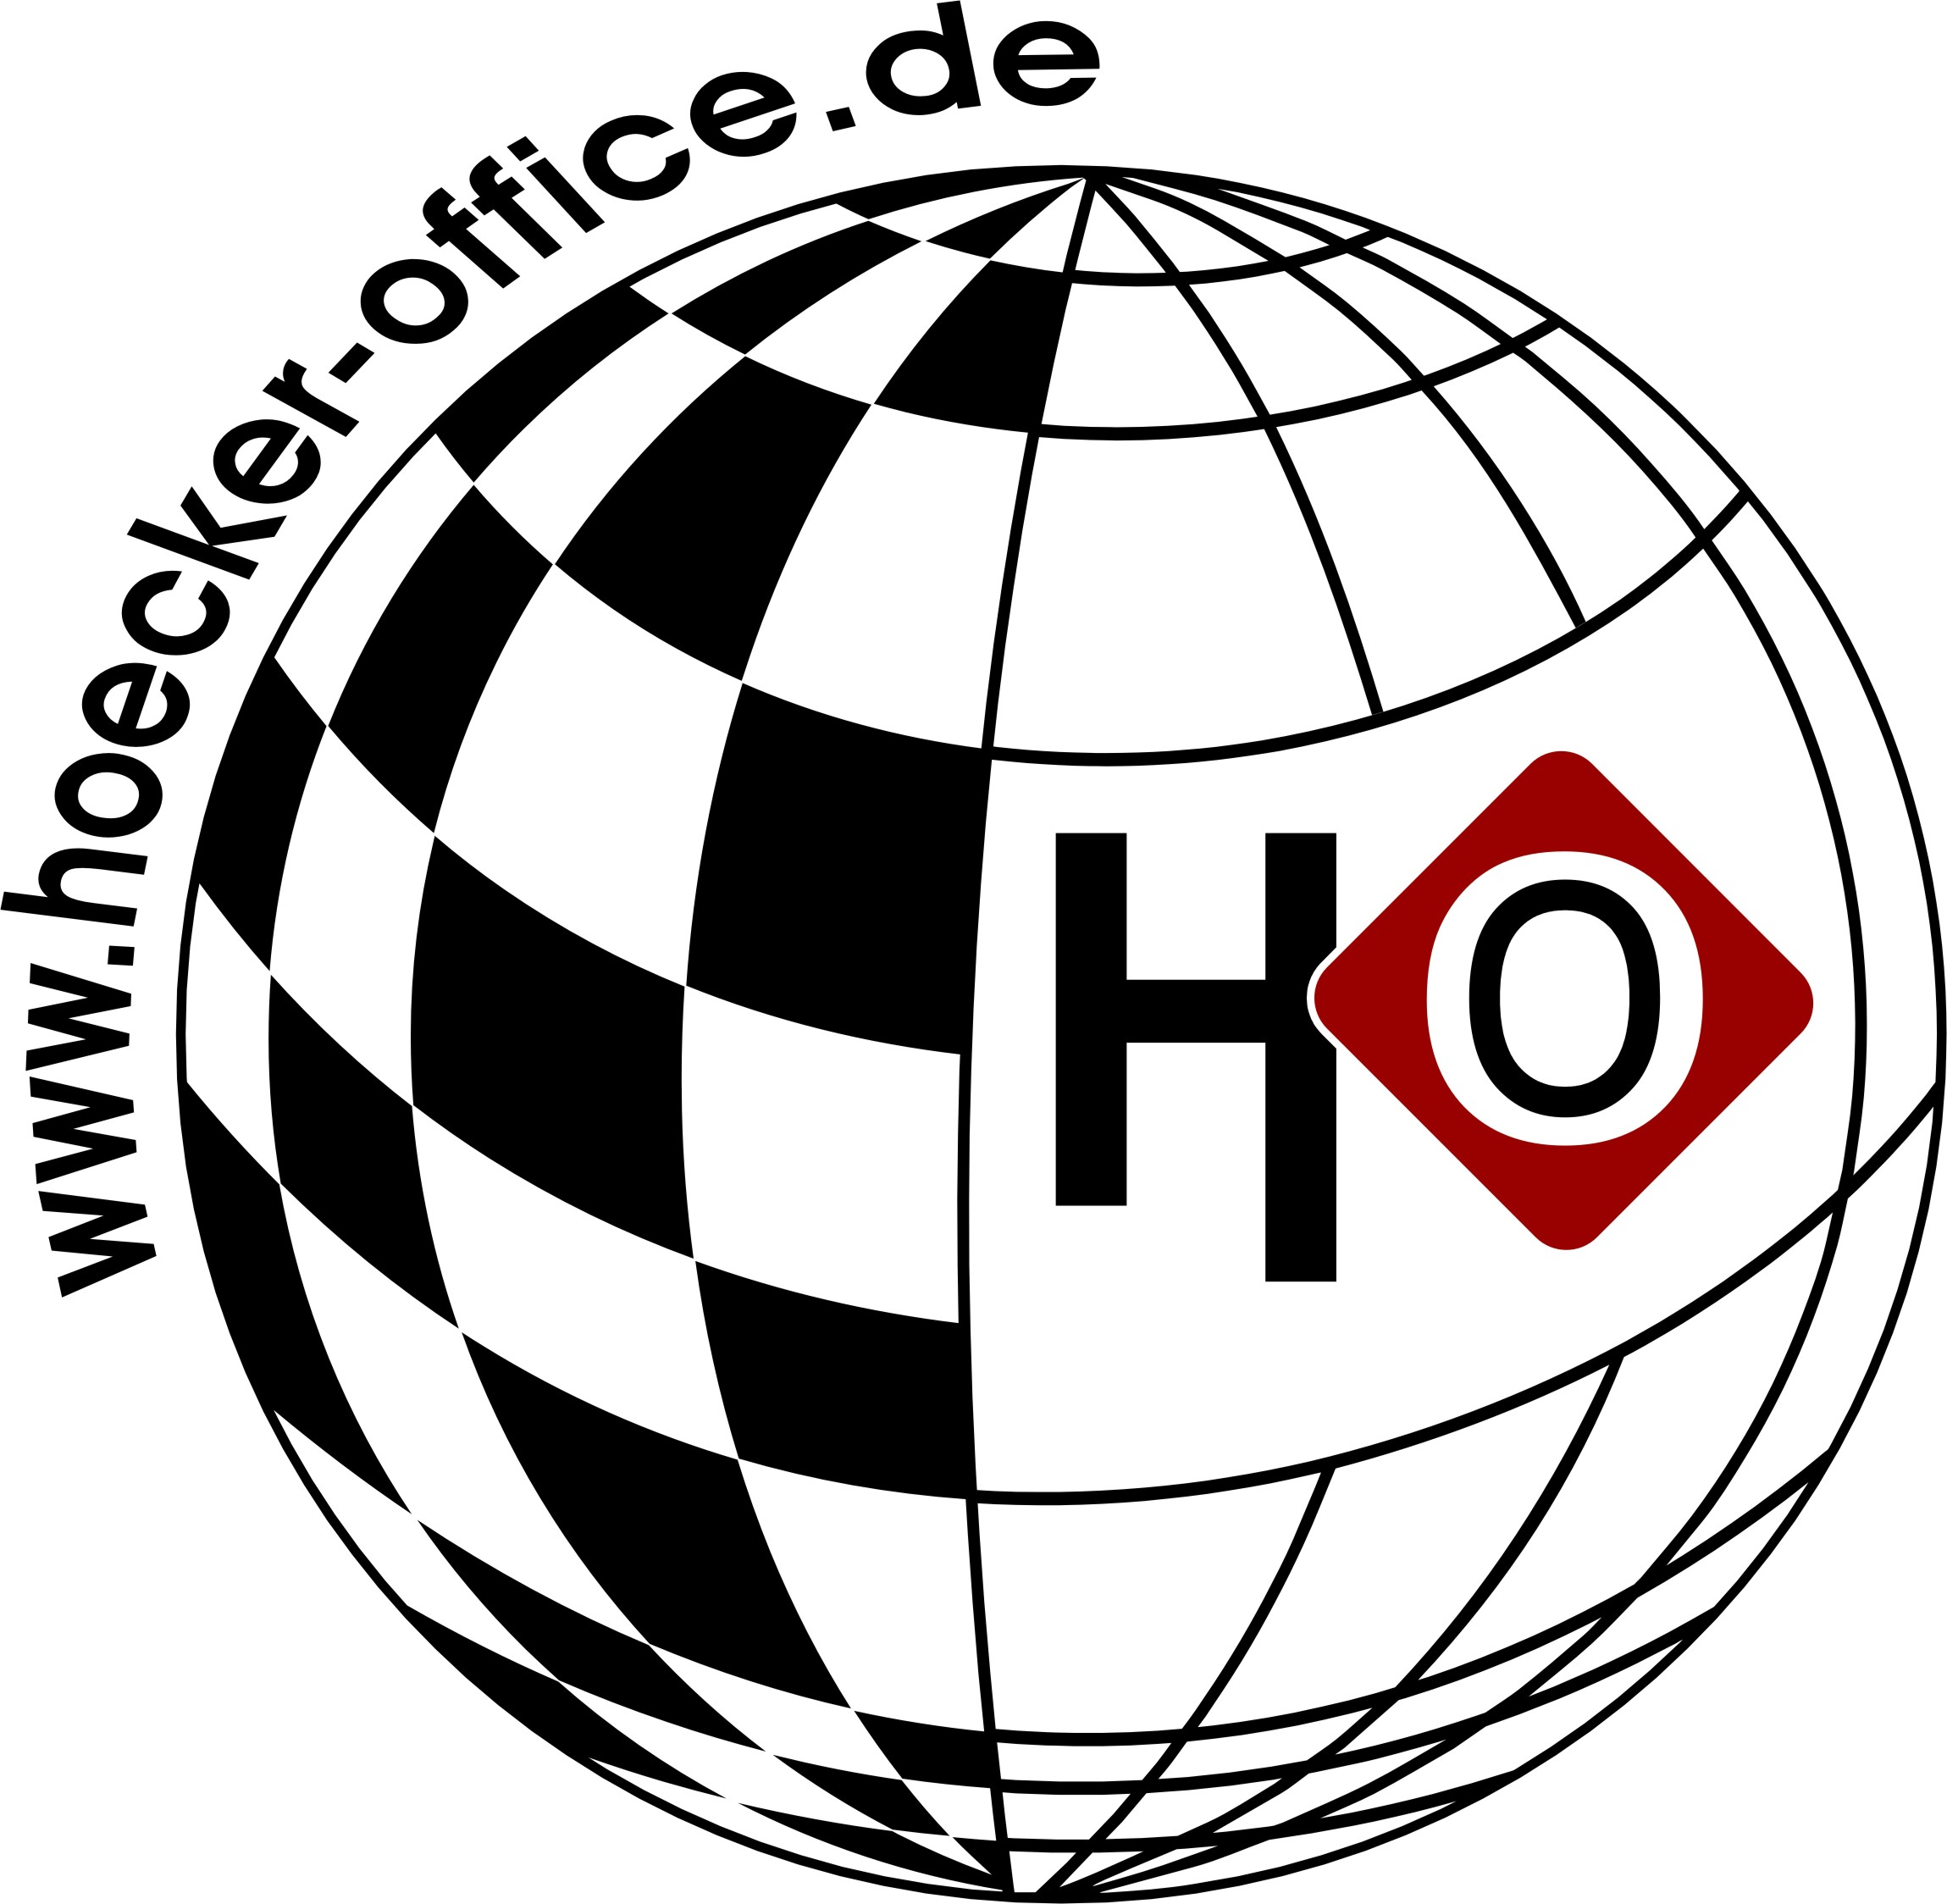 Hoecker Office